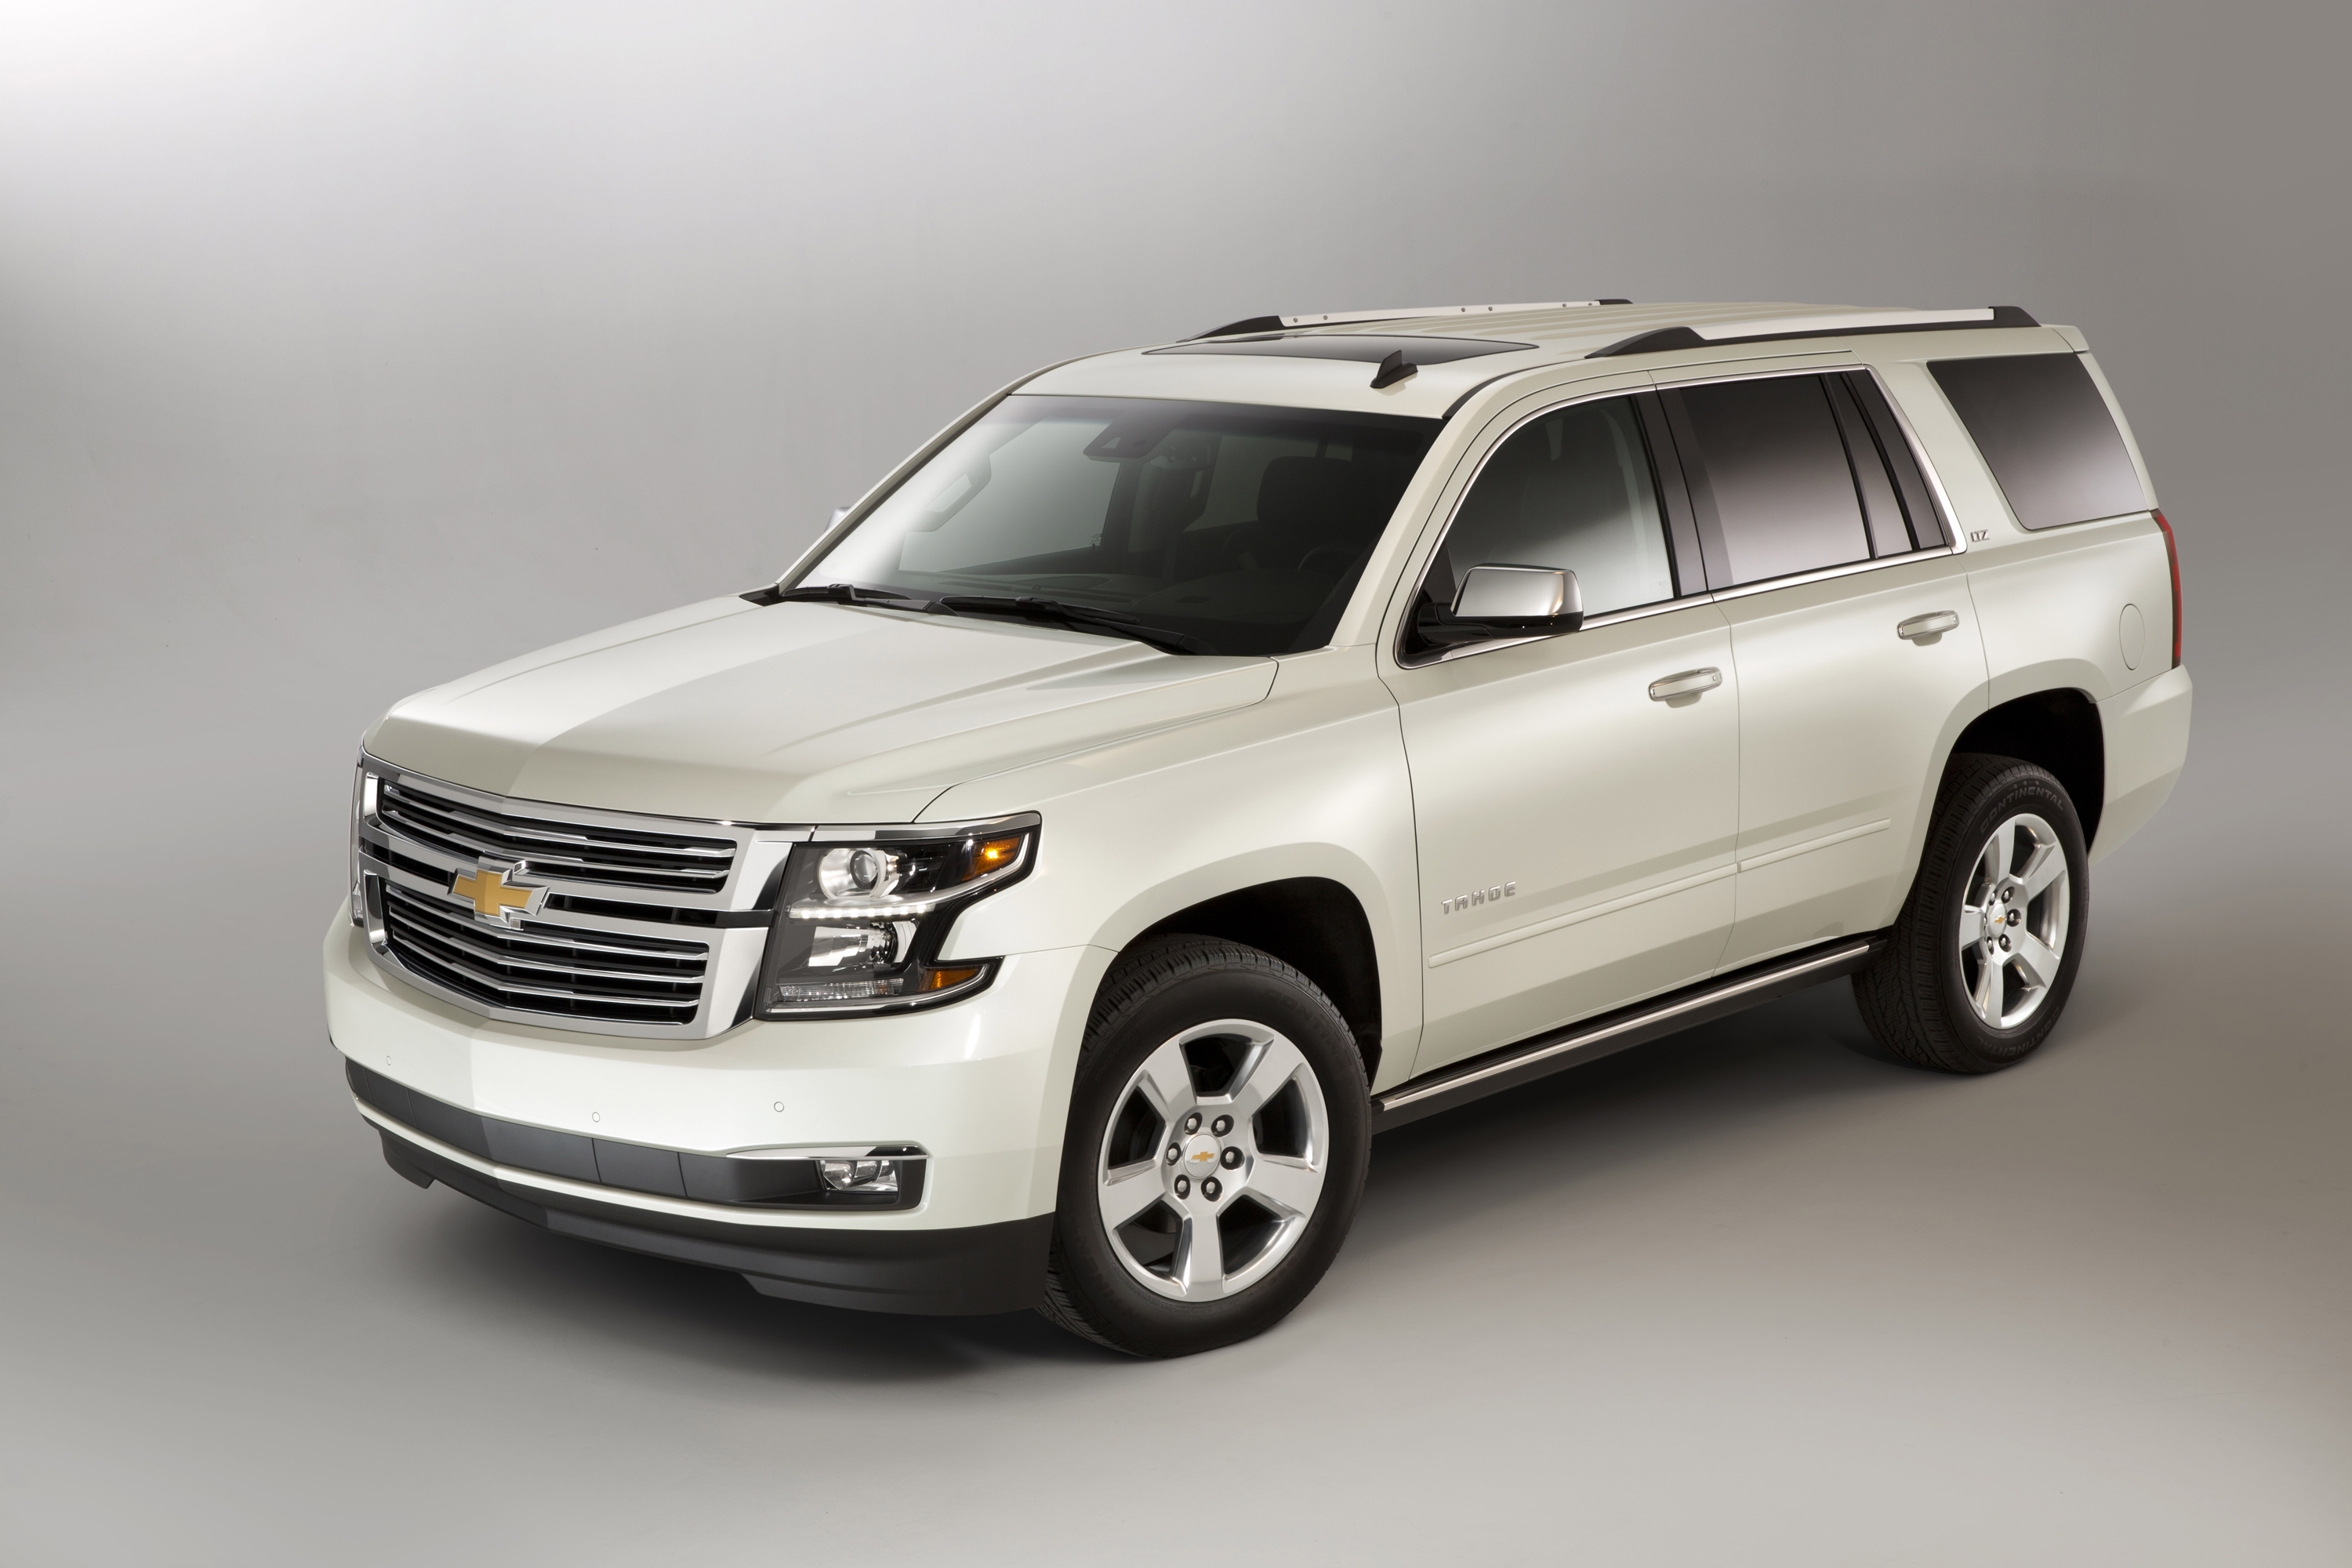 gas control cars with 2015 Chevy Tahoe 4wd Ltz on Door Opening Gripper together with Cost Fuel Injector Cleaning in addition Hey Big Boy besides 100413995 smog In Hong Kong Image By Flickr User Inkelv1122 also 284756 1972 Mercury Colony Park Station Wagon 429 Ford Country Squire Low Miles.